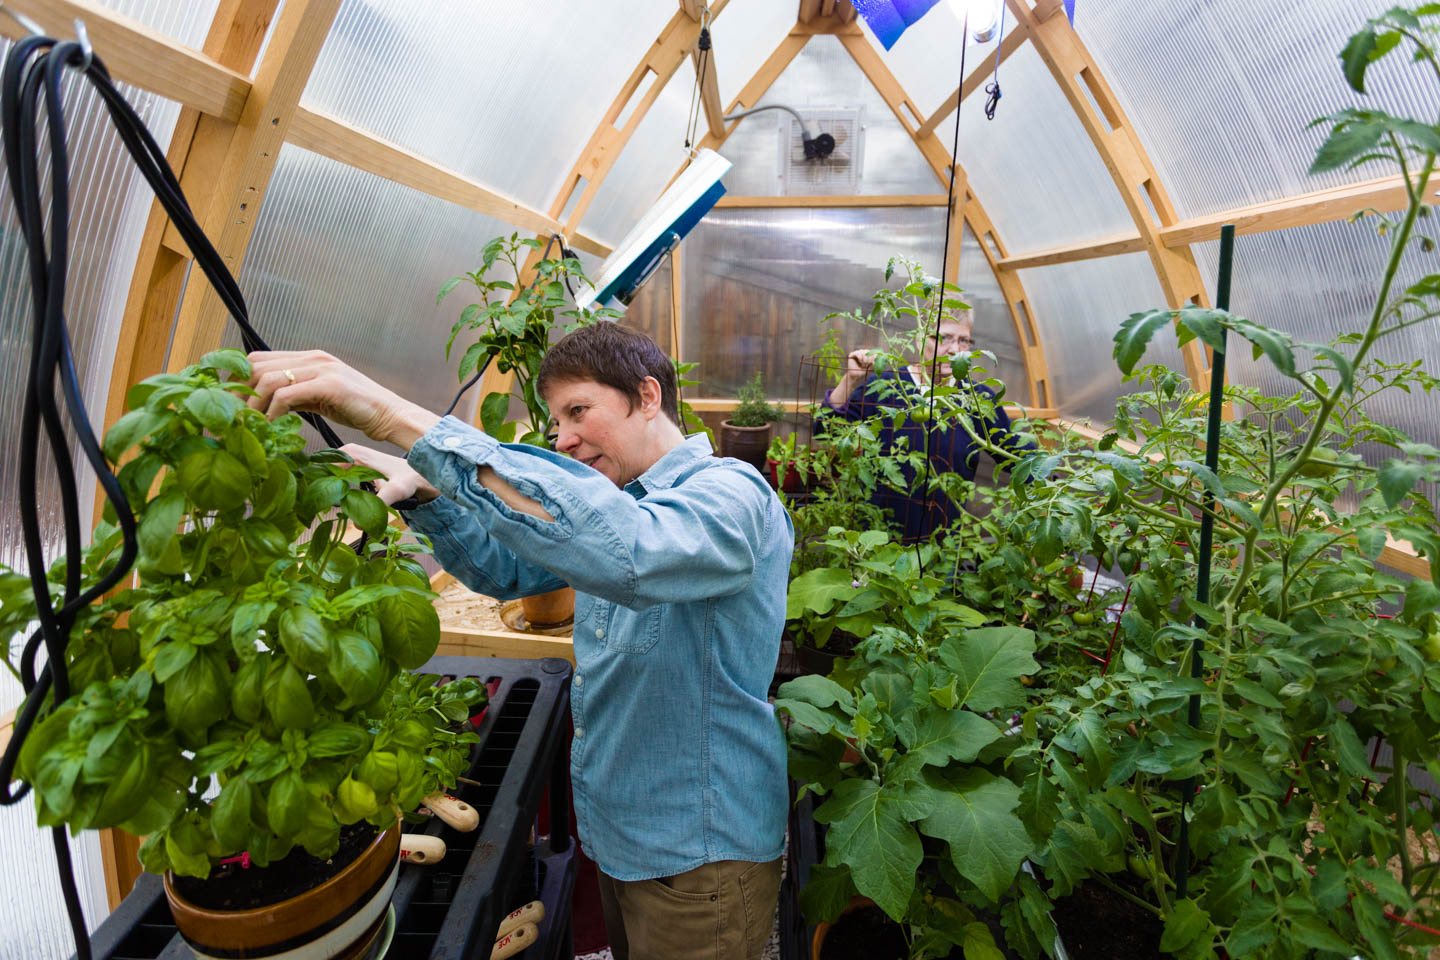 Kody Partridge works in the greenhouse